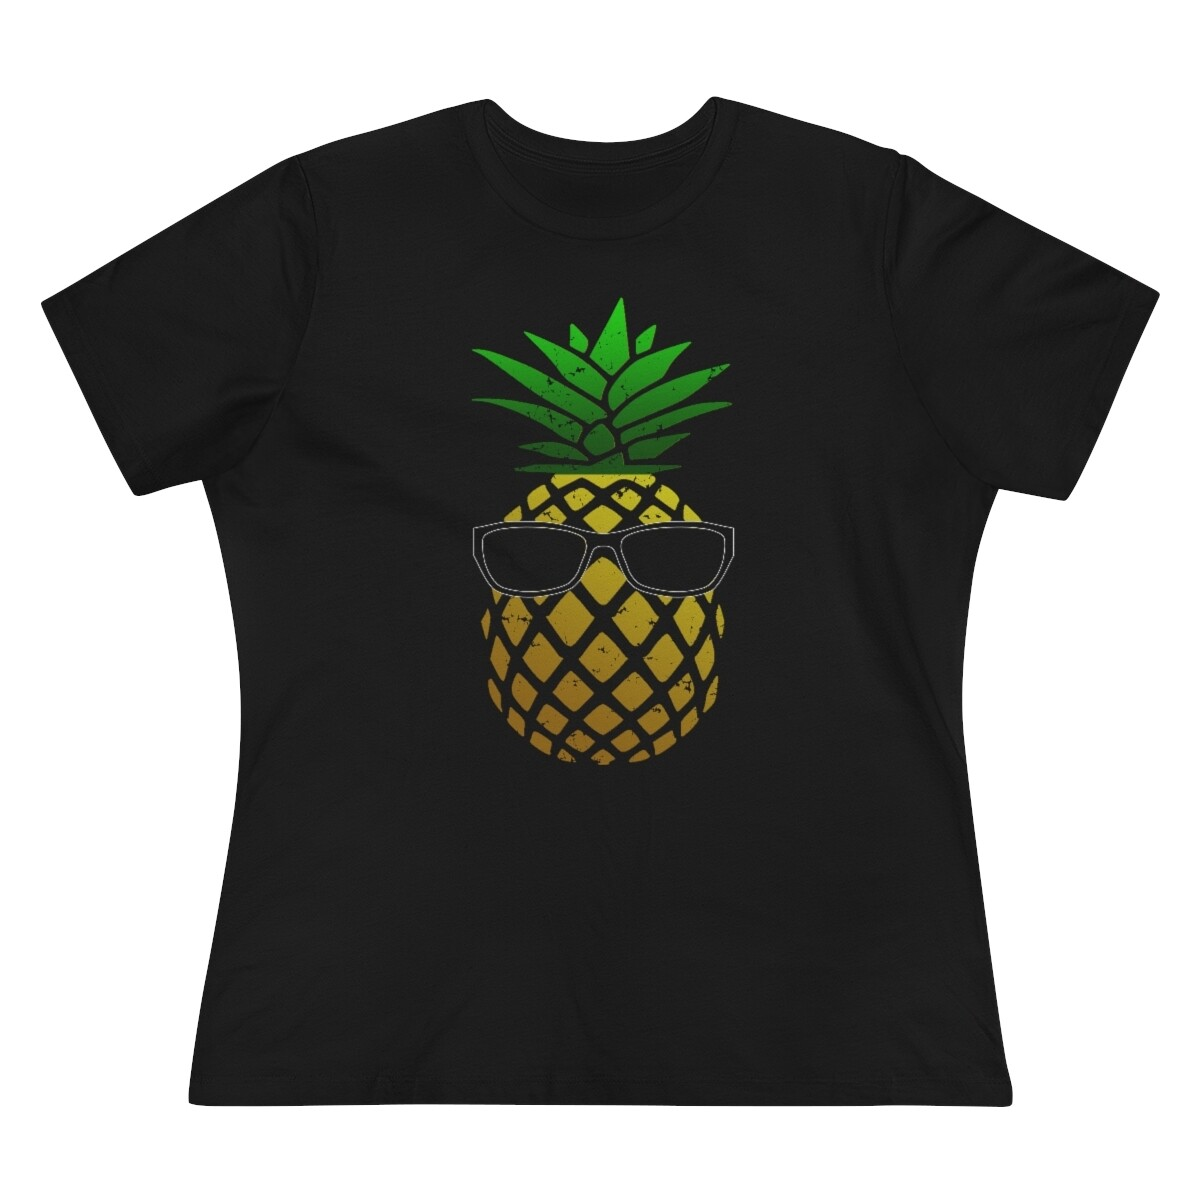 *Pineapple Head - 6400